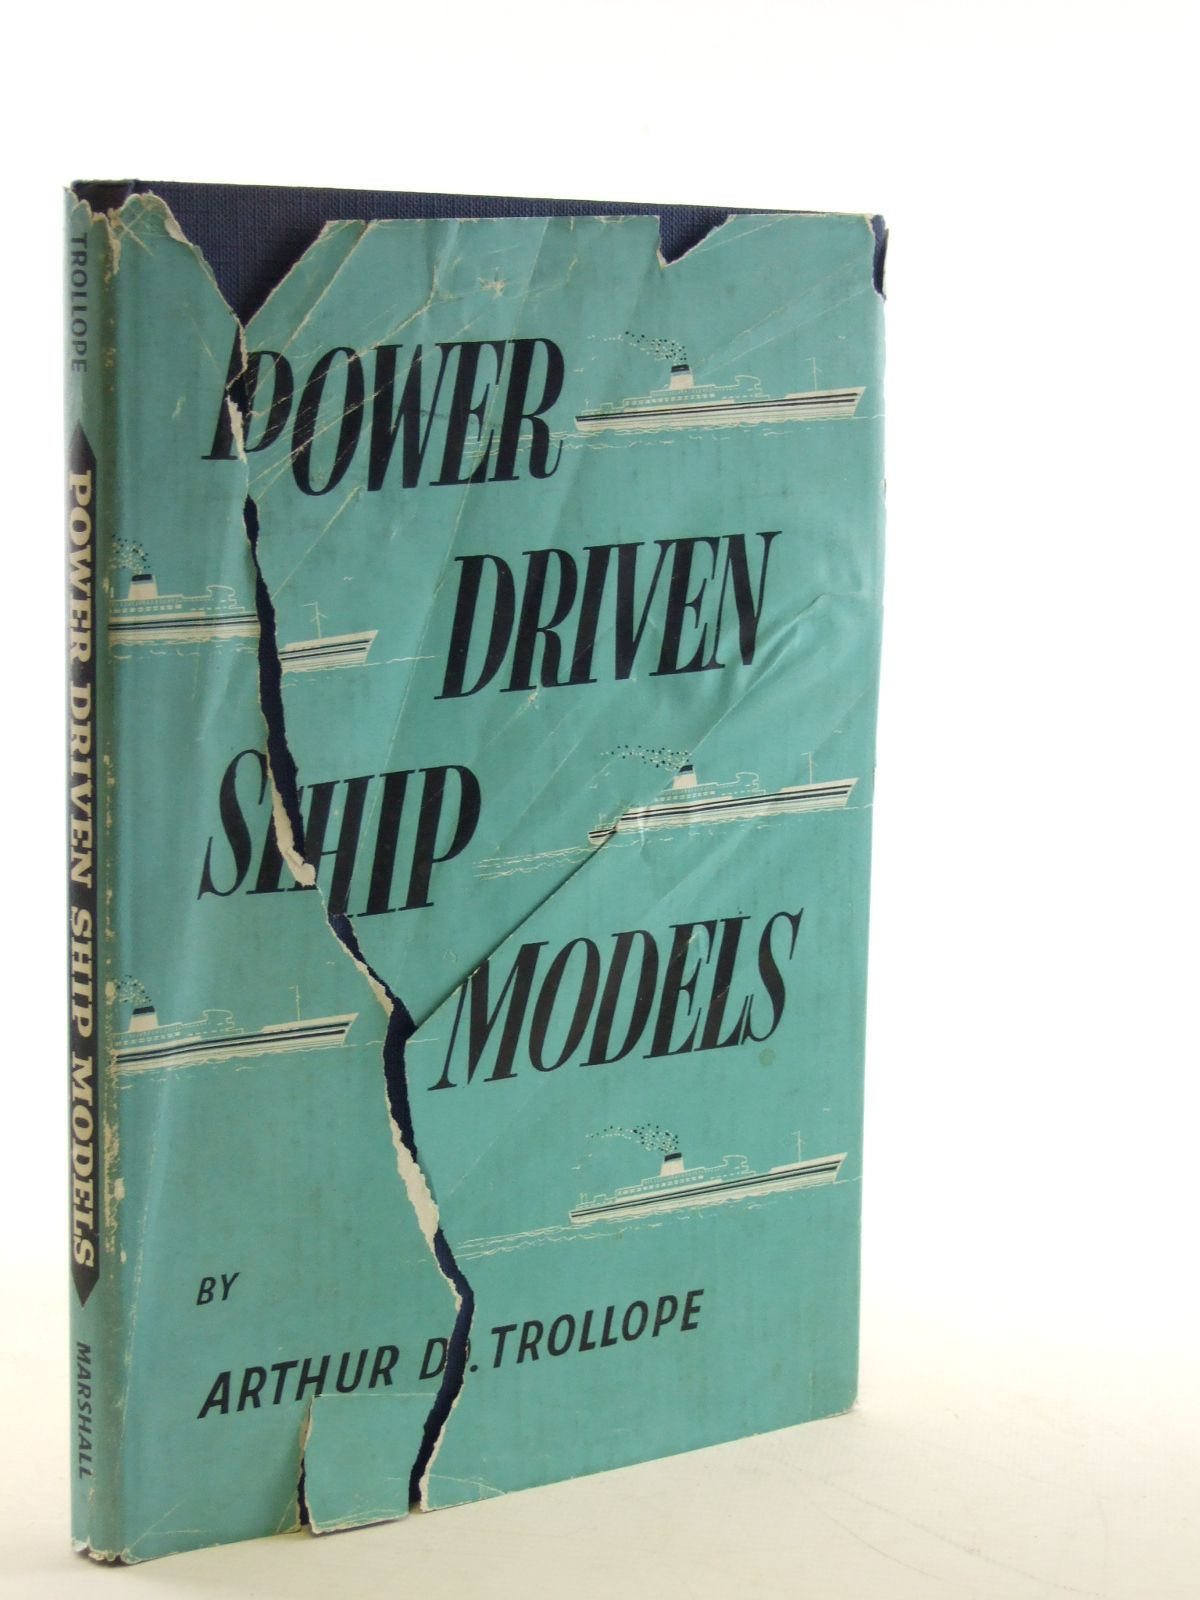 Photo of POWER DRIVEN SHIP MODELS written by Trollope, A.D. published by Percival Marshall And Co Ltd. (STOCK CODE: 1603375)  for sale by Stella & Rose's Books